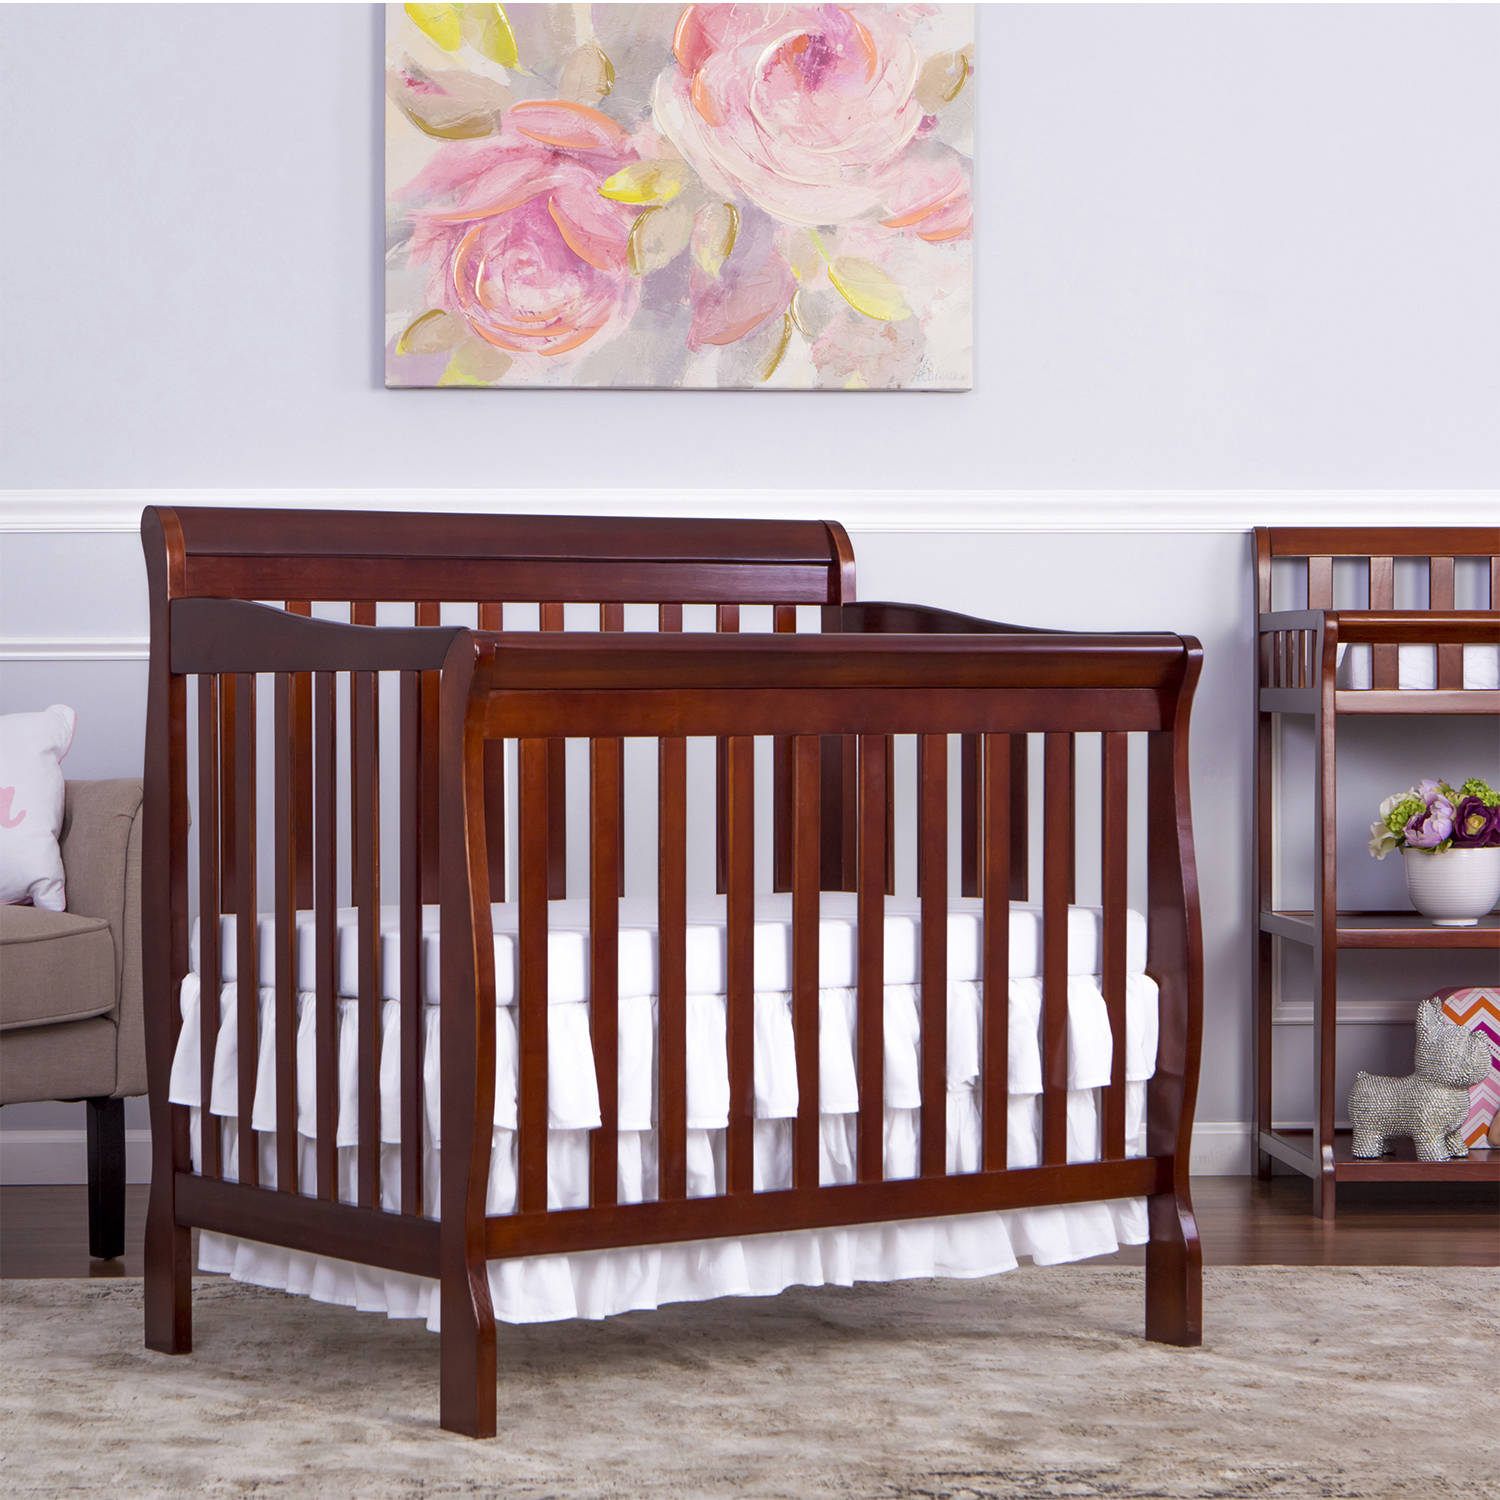 Dream On Me Aden 4-in-1 Fixed-Side Convertible Mini Crib, Espresso